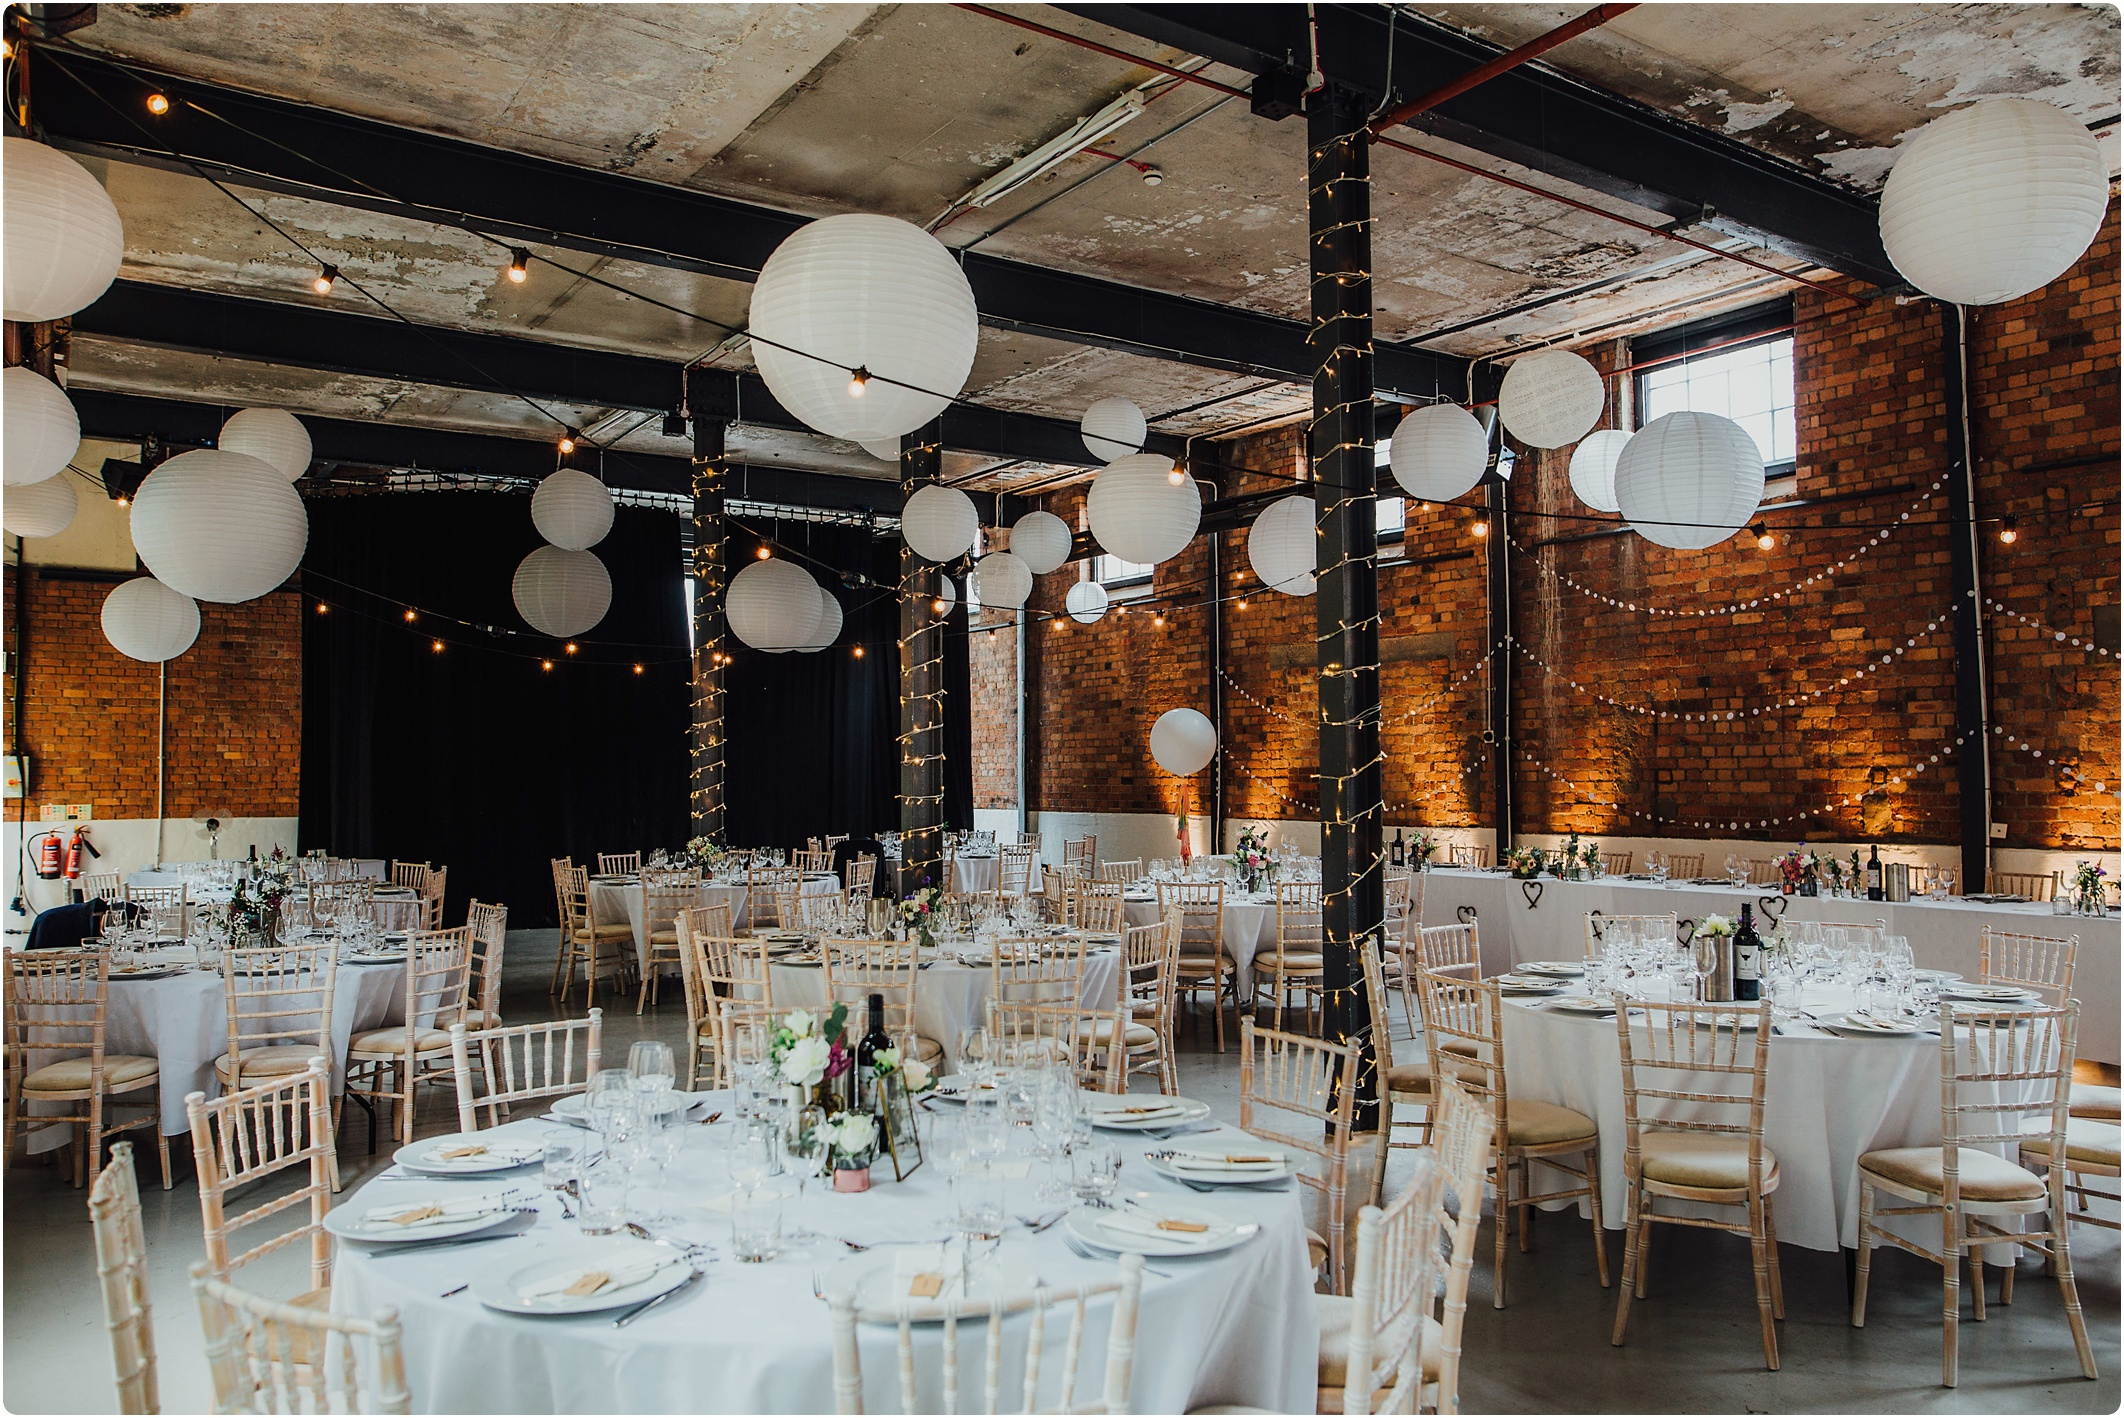 Room set up at The Paintworks Wedding